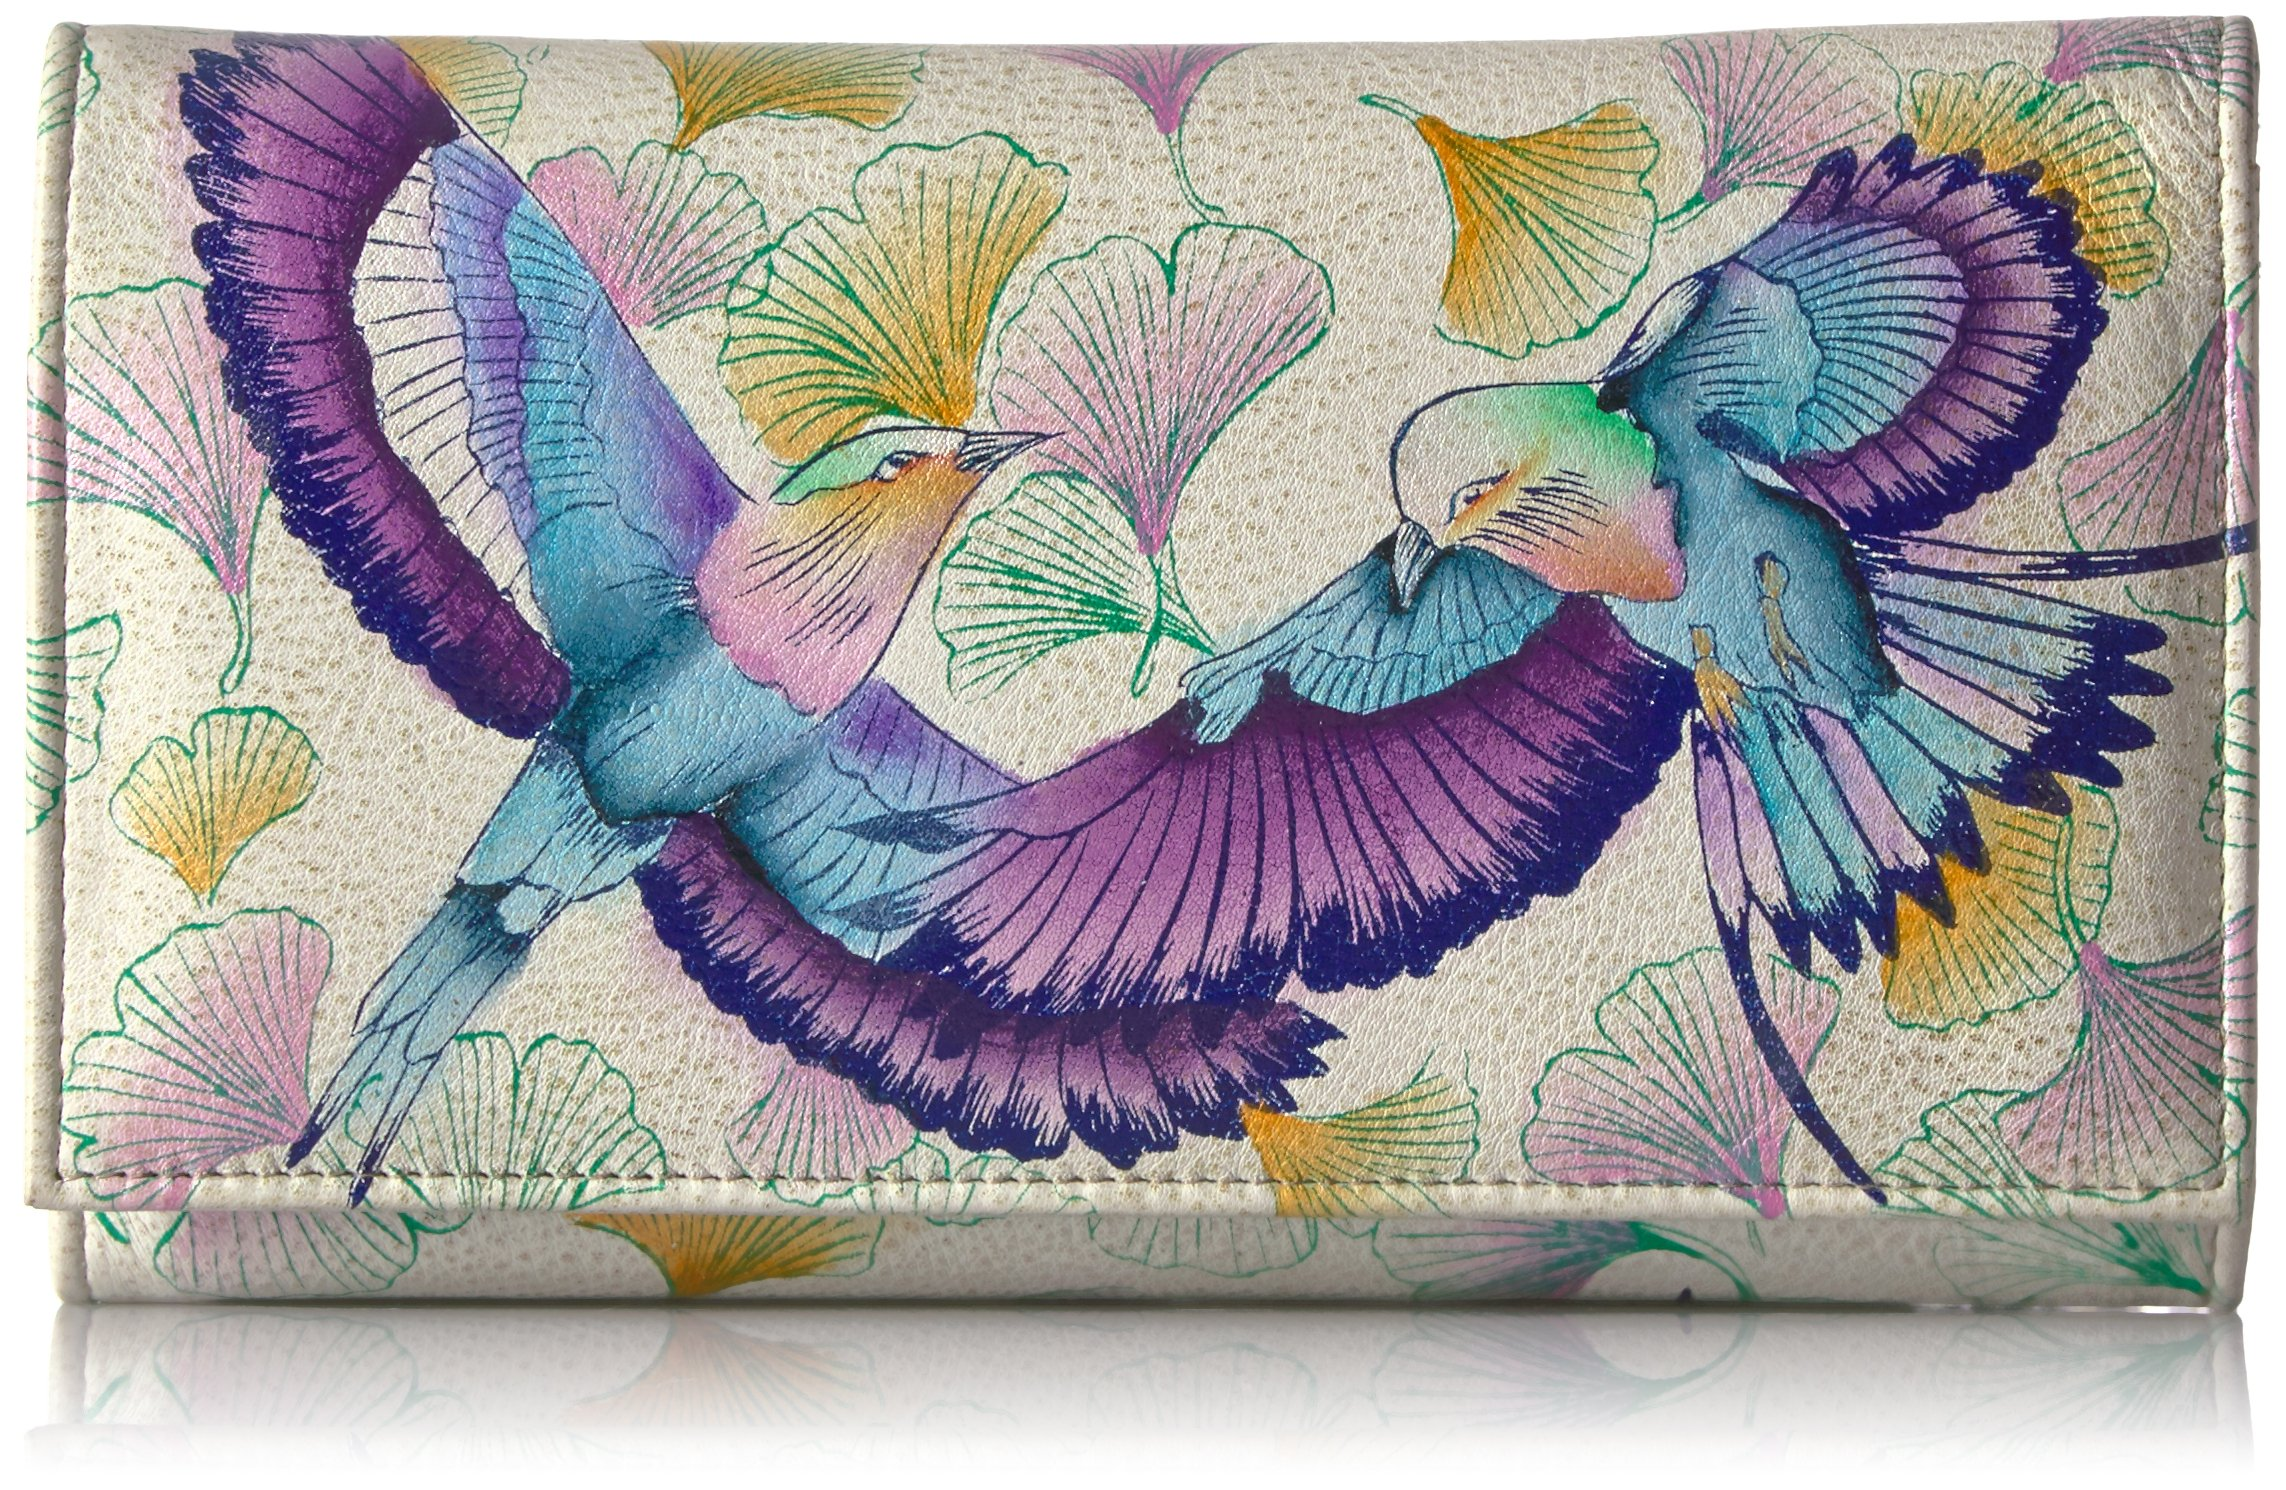 Anuschka Handpainted Leather Checkbook Wallet/Clutch,wings Of Hope Wallet, WINGS OF HOPE, One Size